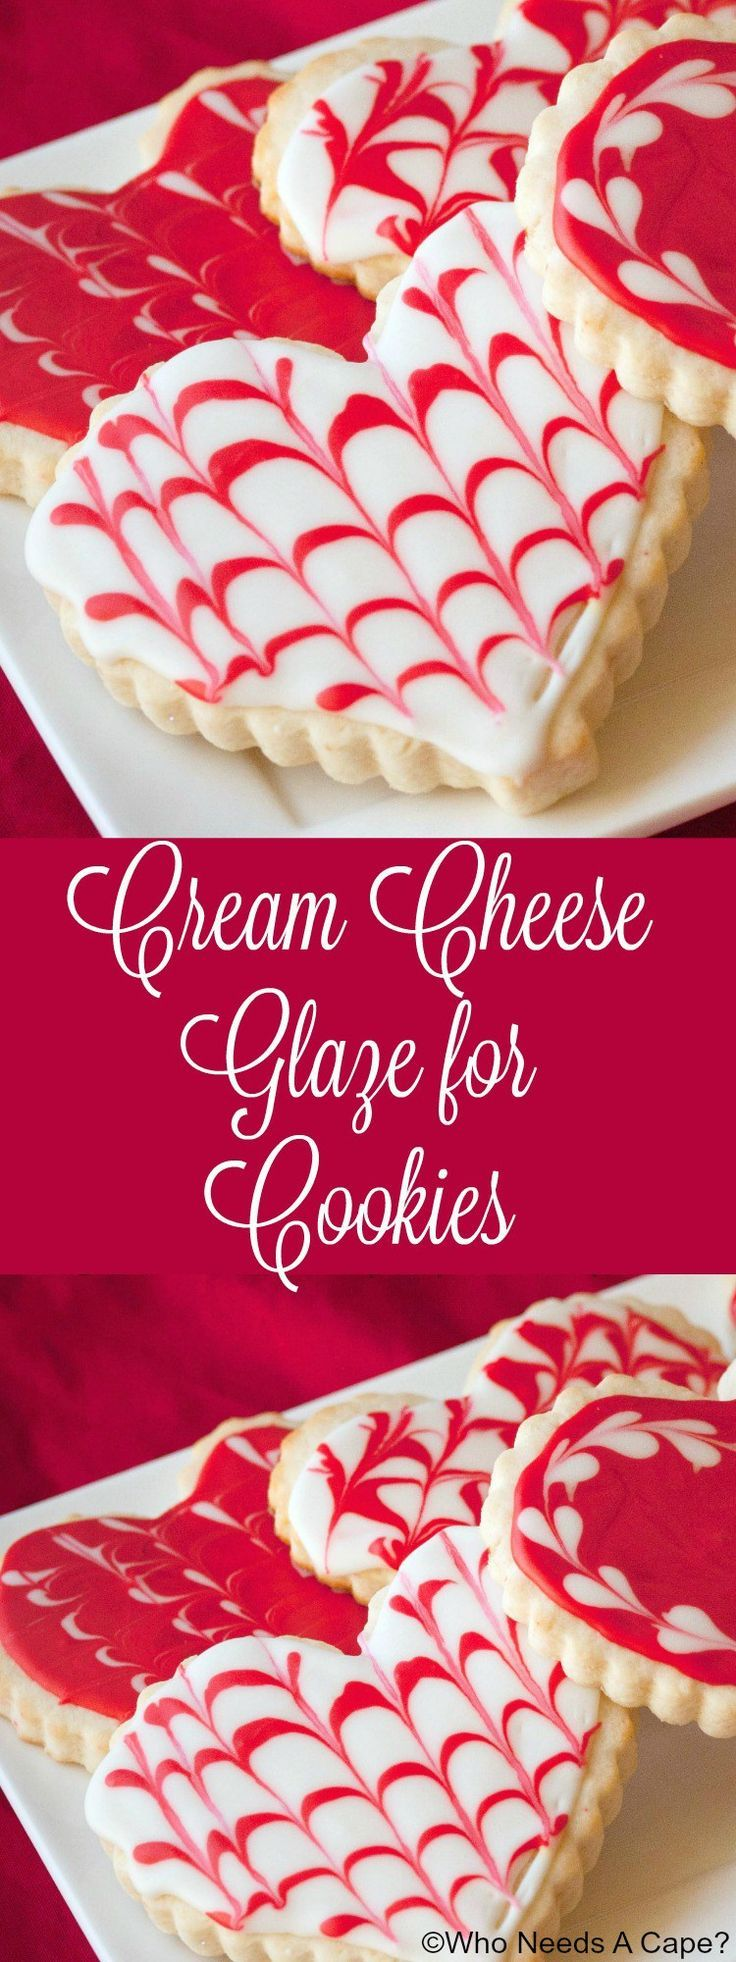 Make this amazing Cream Cheese Glaze for Cookies instead of royal icing Easy to  Valentines Day Recipes  More